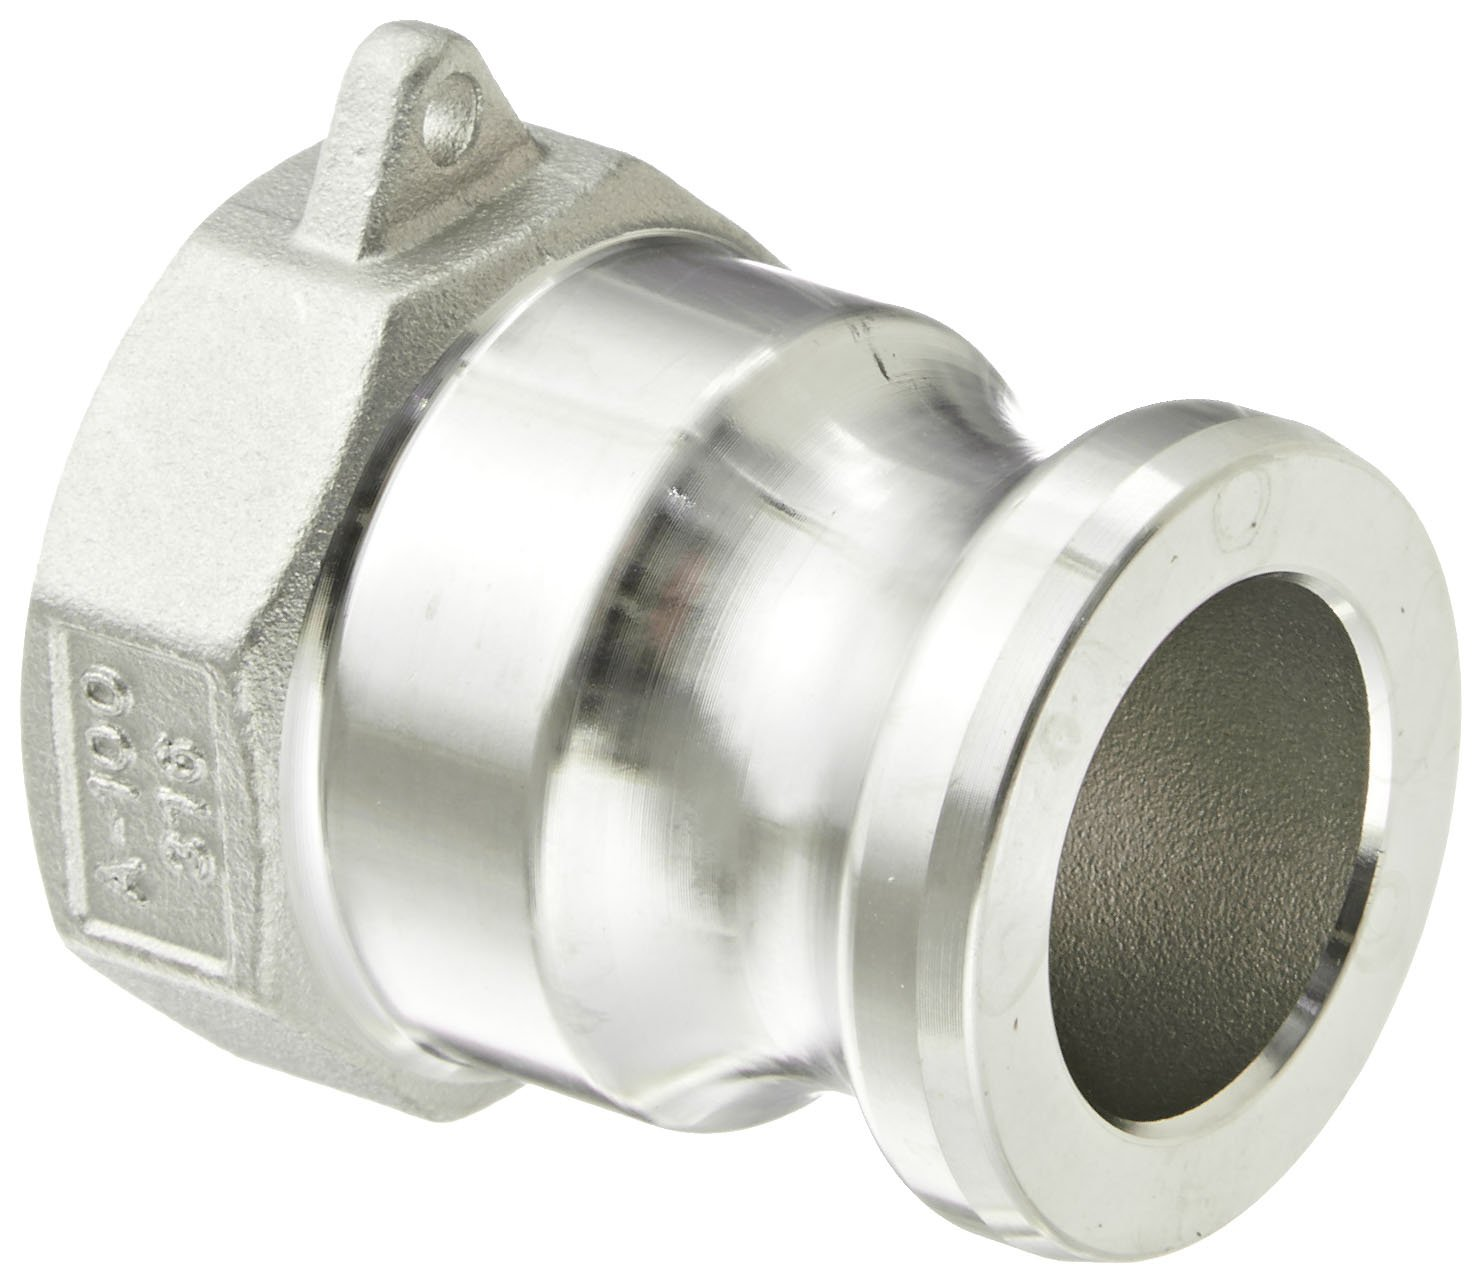 2 Plug x 2 NPT Male Dixon G200-F-SS Investment Cast Stainless Steel 316 Global Type F Cam and Groove Hose Fitting